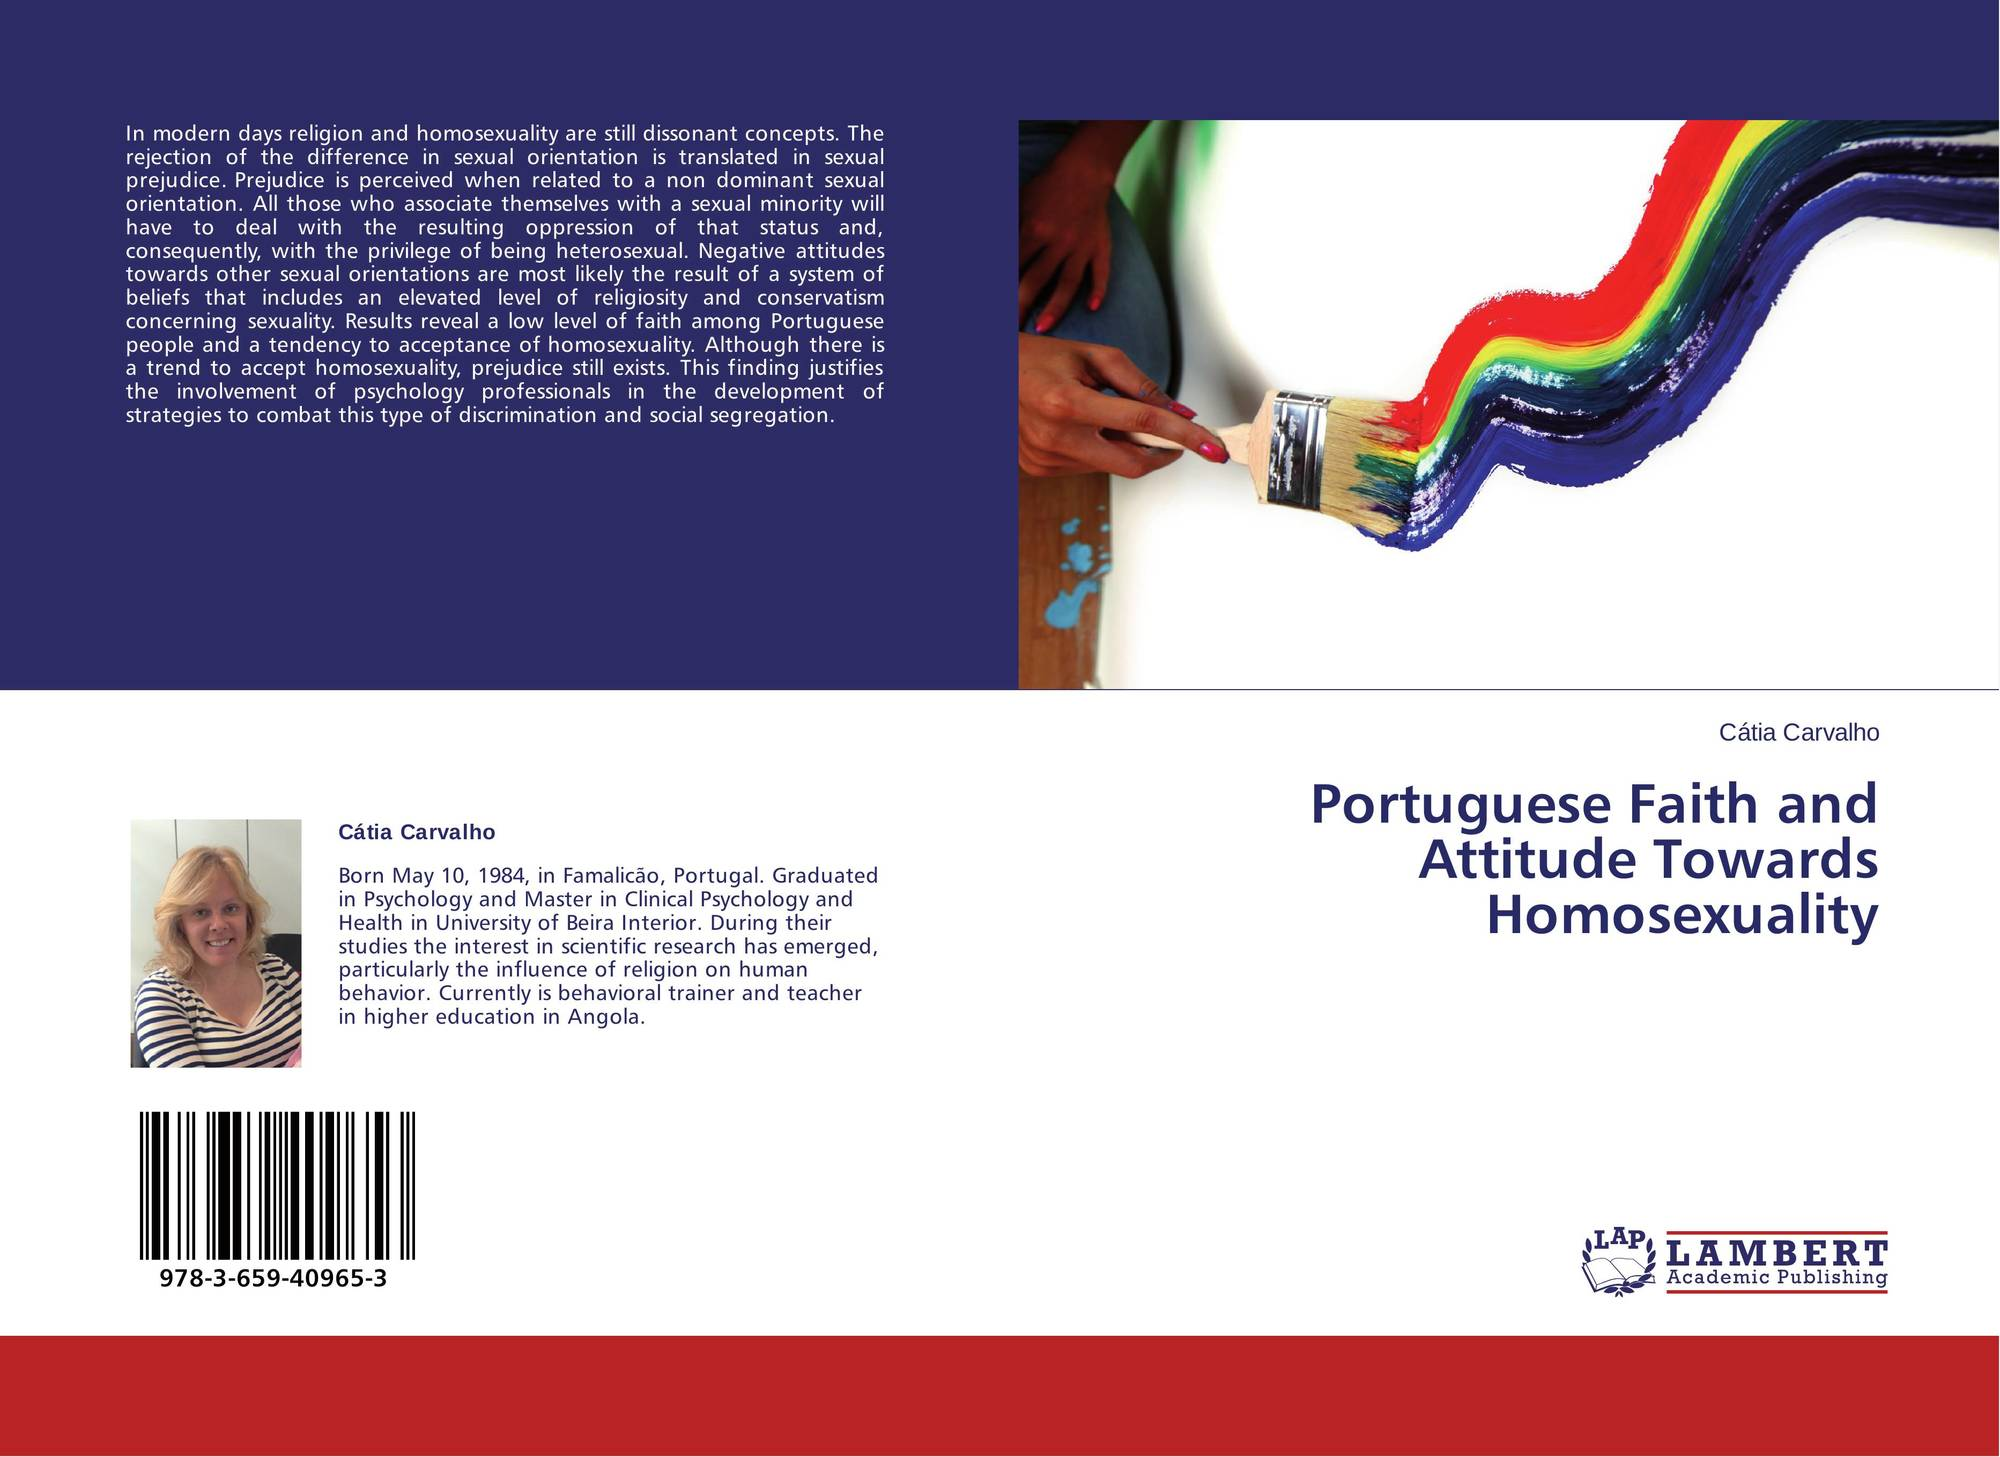 attitudes of university students in lebanon towards homosexuality 1 cross-national differences in attitudes towards homosexuality tom w smith norc/university of chicago gss cross-national report no 31 this report was prepared with support from the charles r williams institute on sexual orientation law.